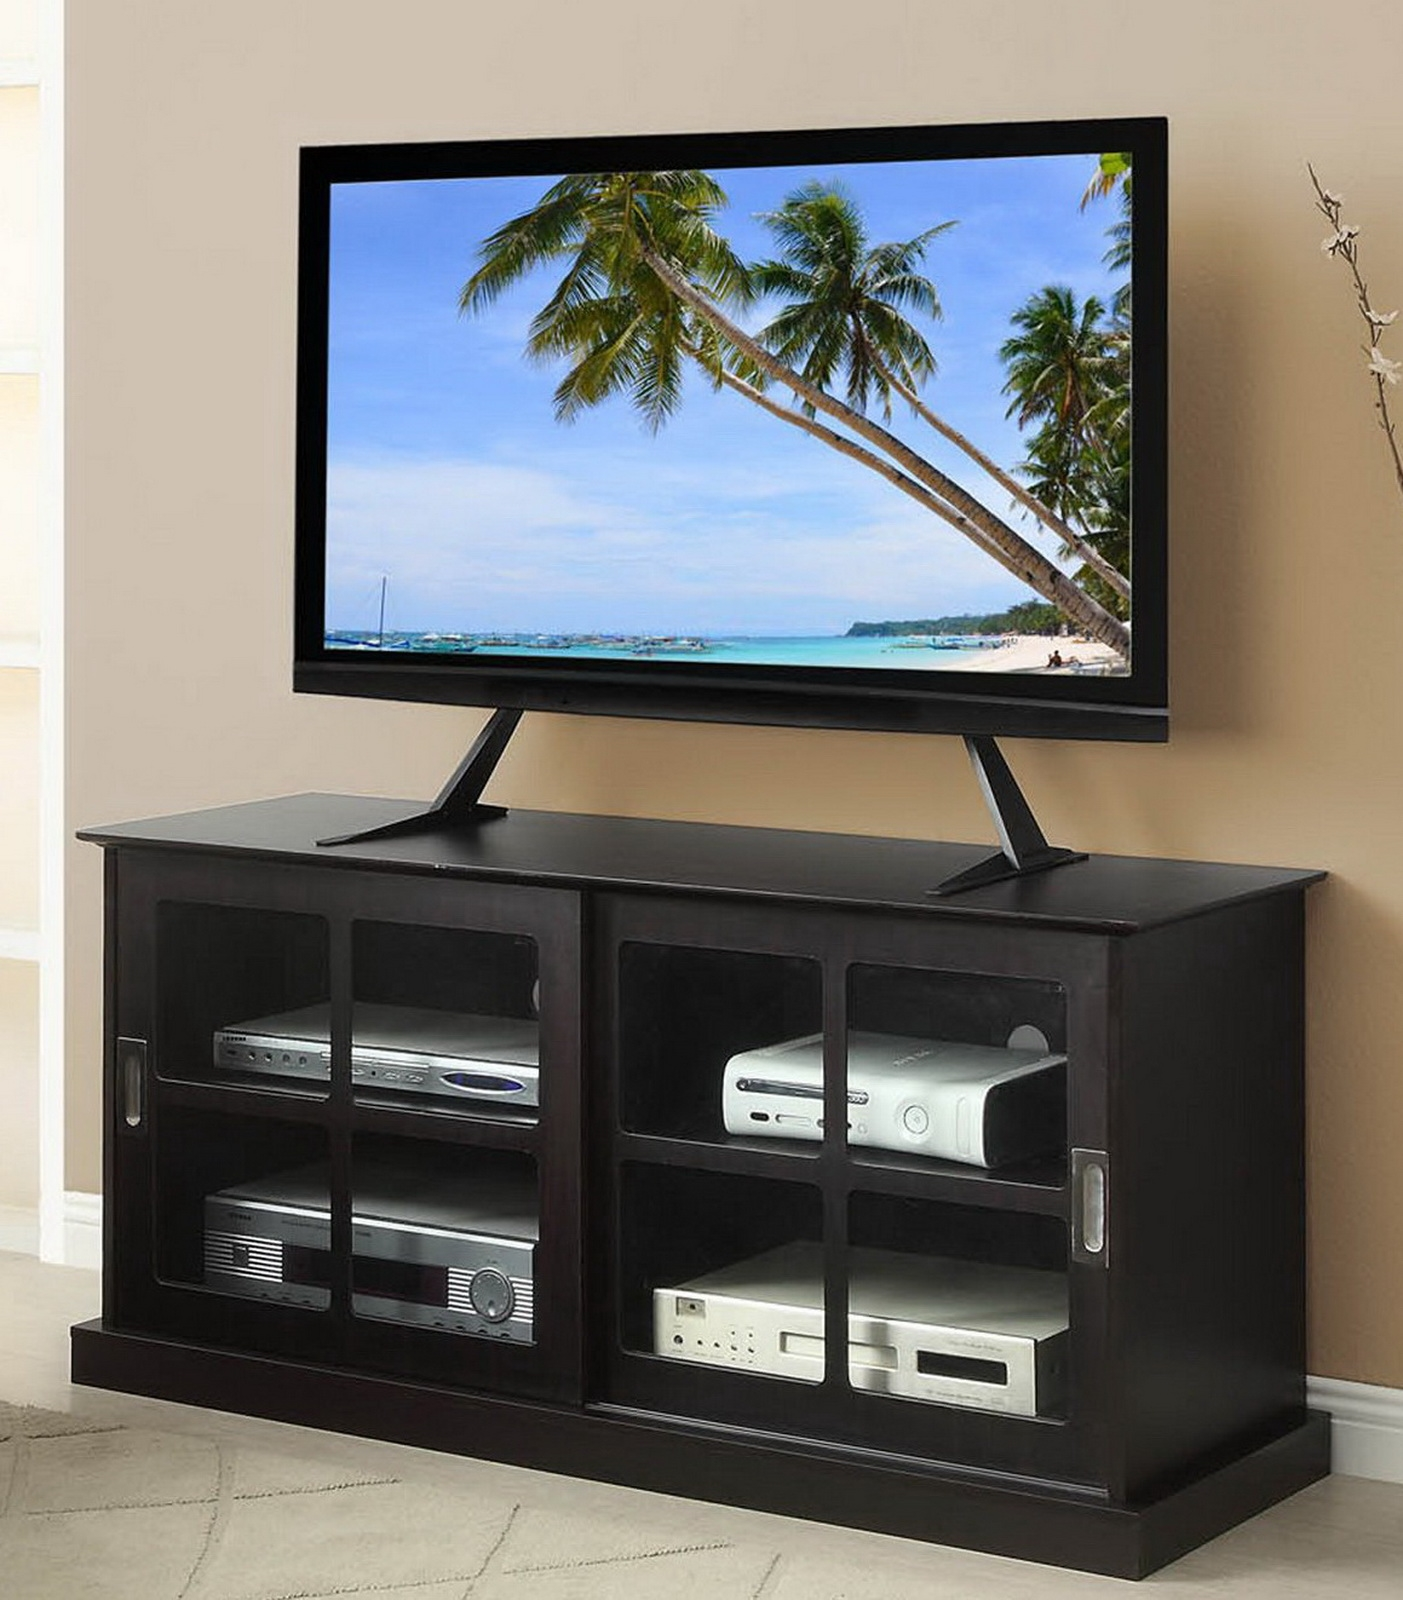 Table Top Flat Screen Tv Stand